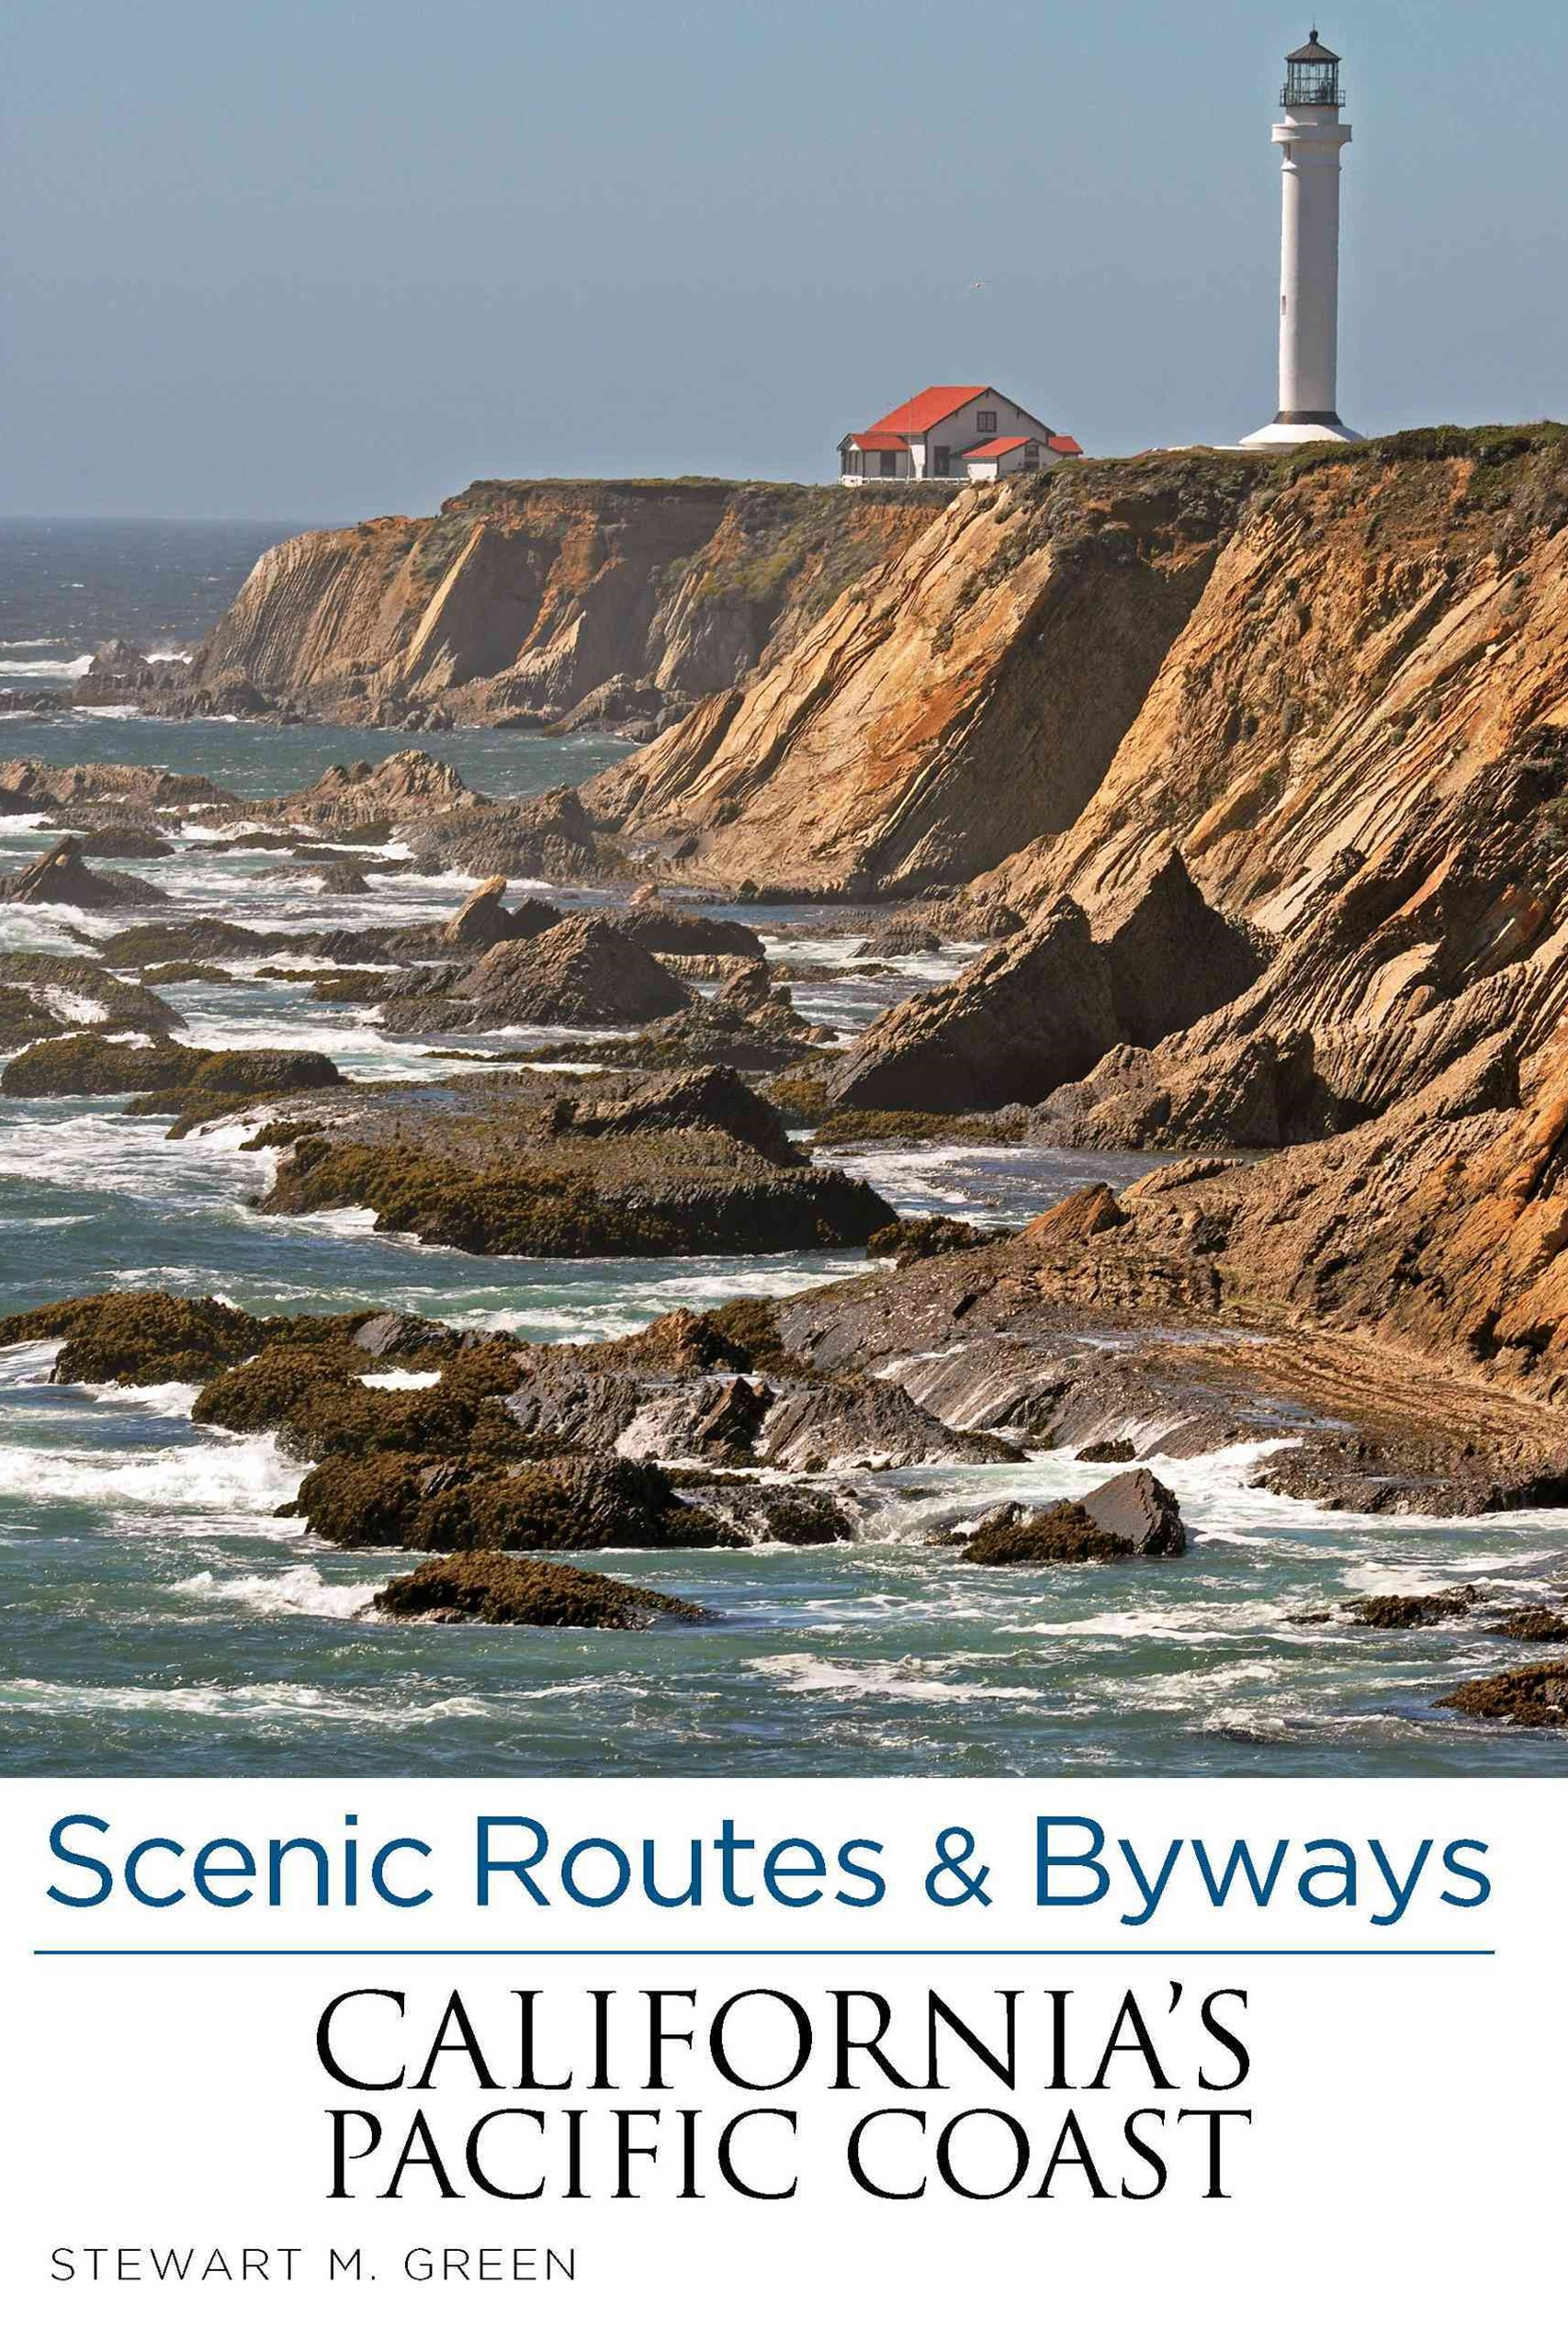 Scenic Routes and Byways California's Pacific Coast